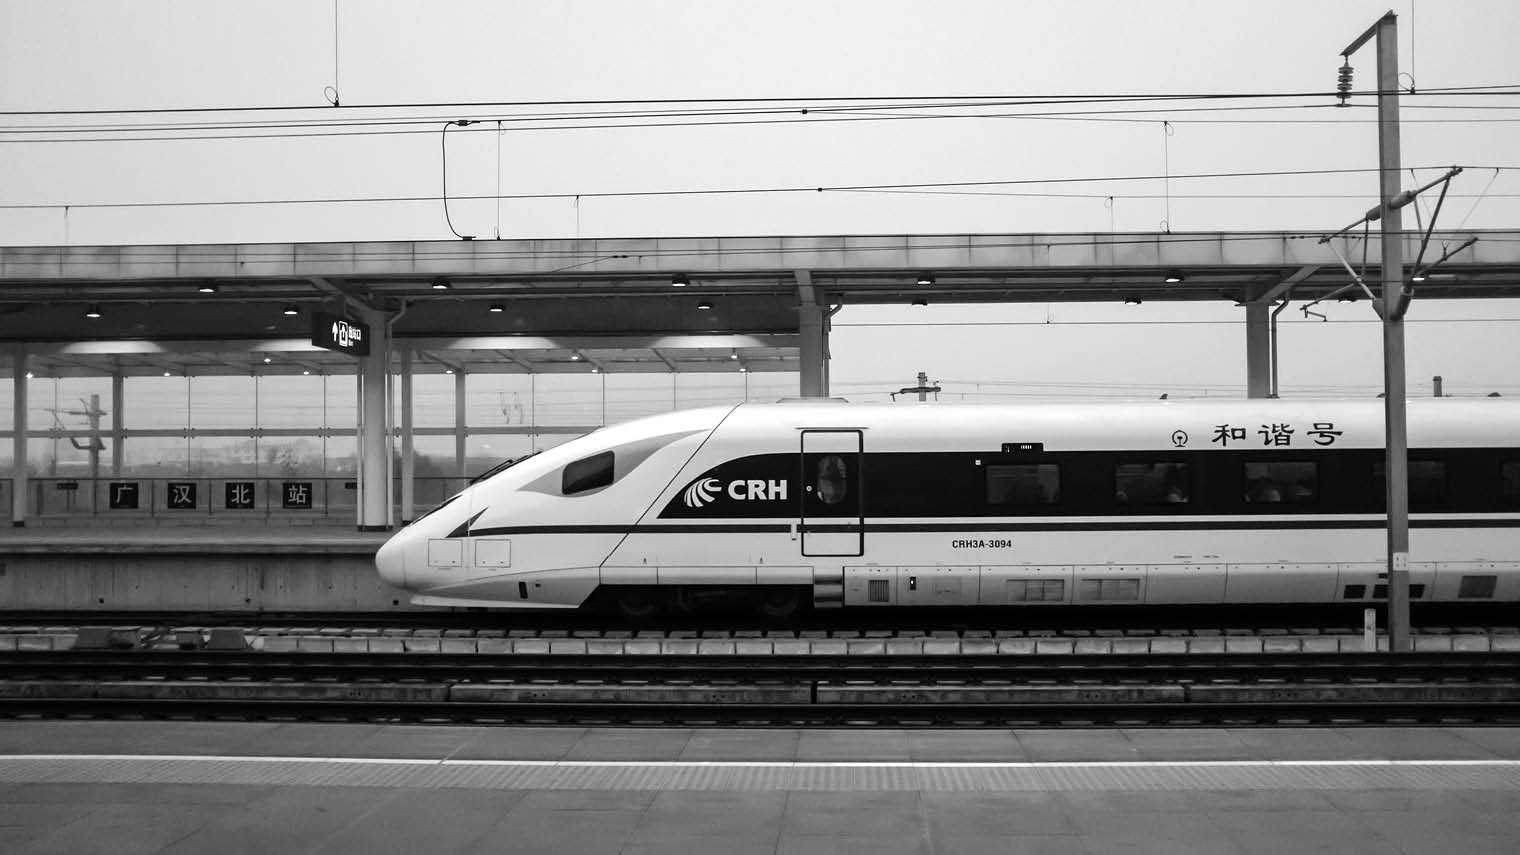 black and white super train at platform in station